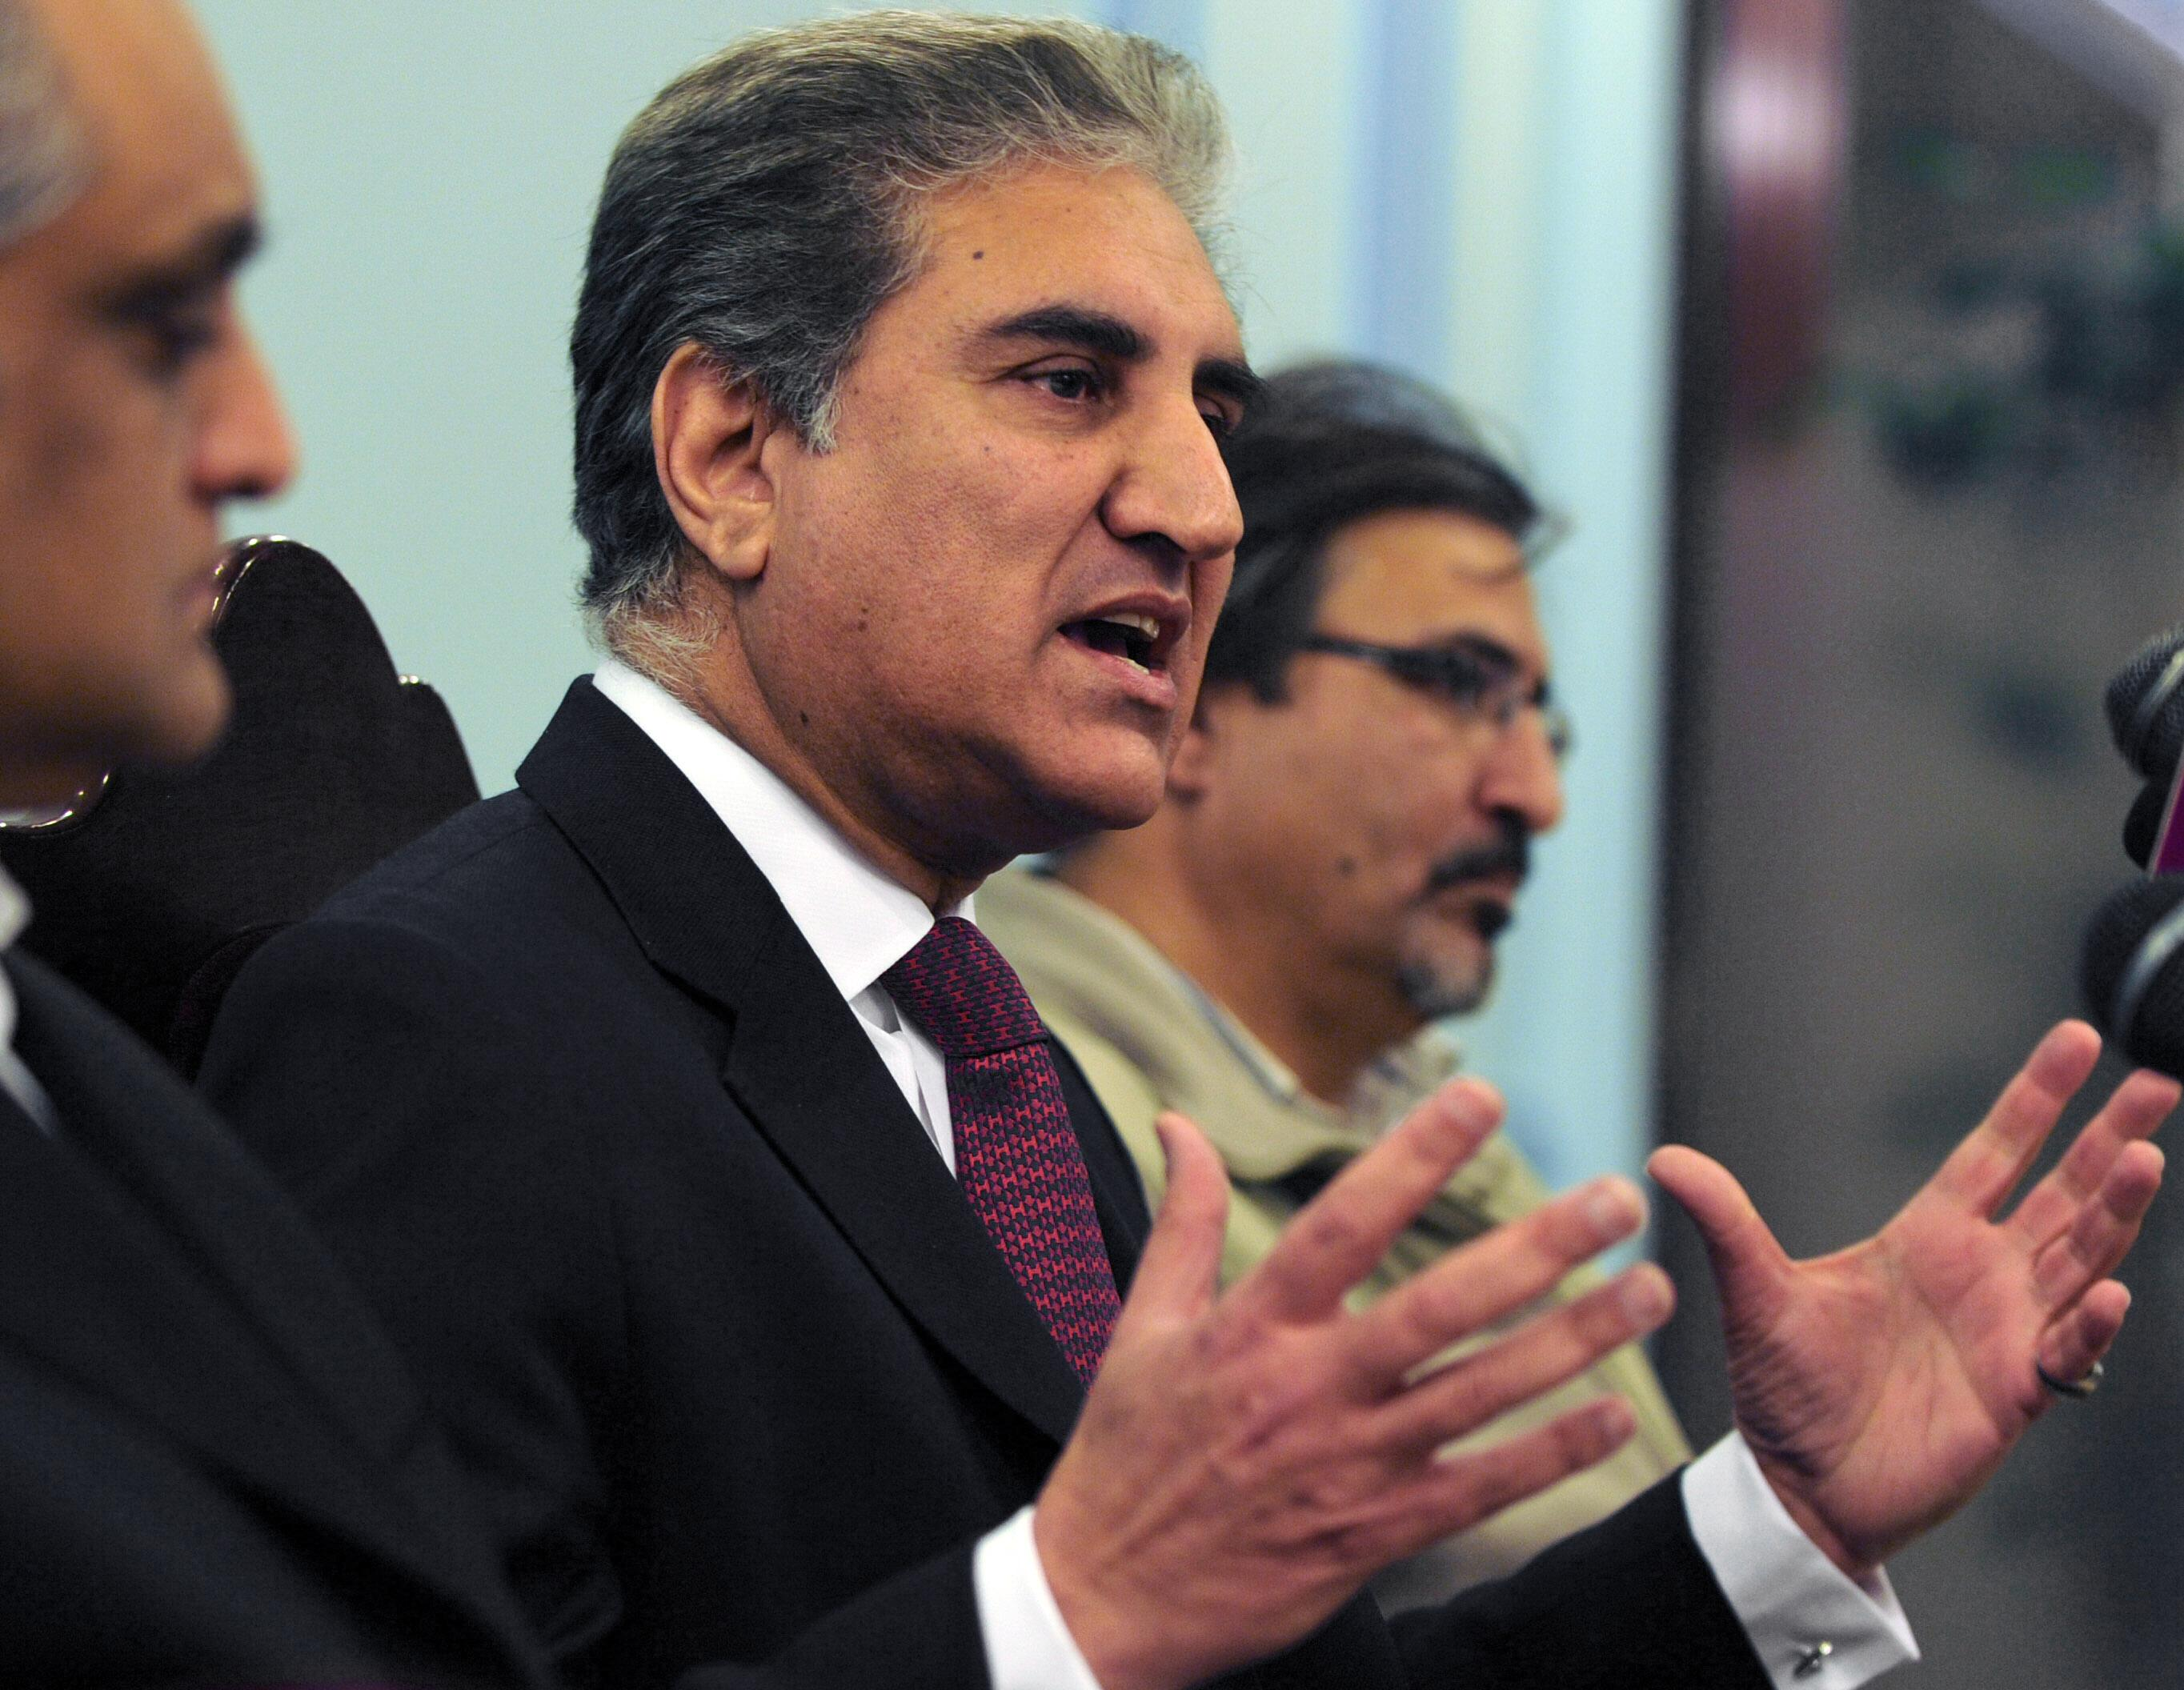 theory of strategic depth a dead horse says qureshi